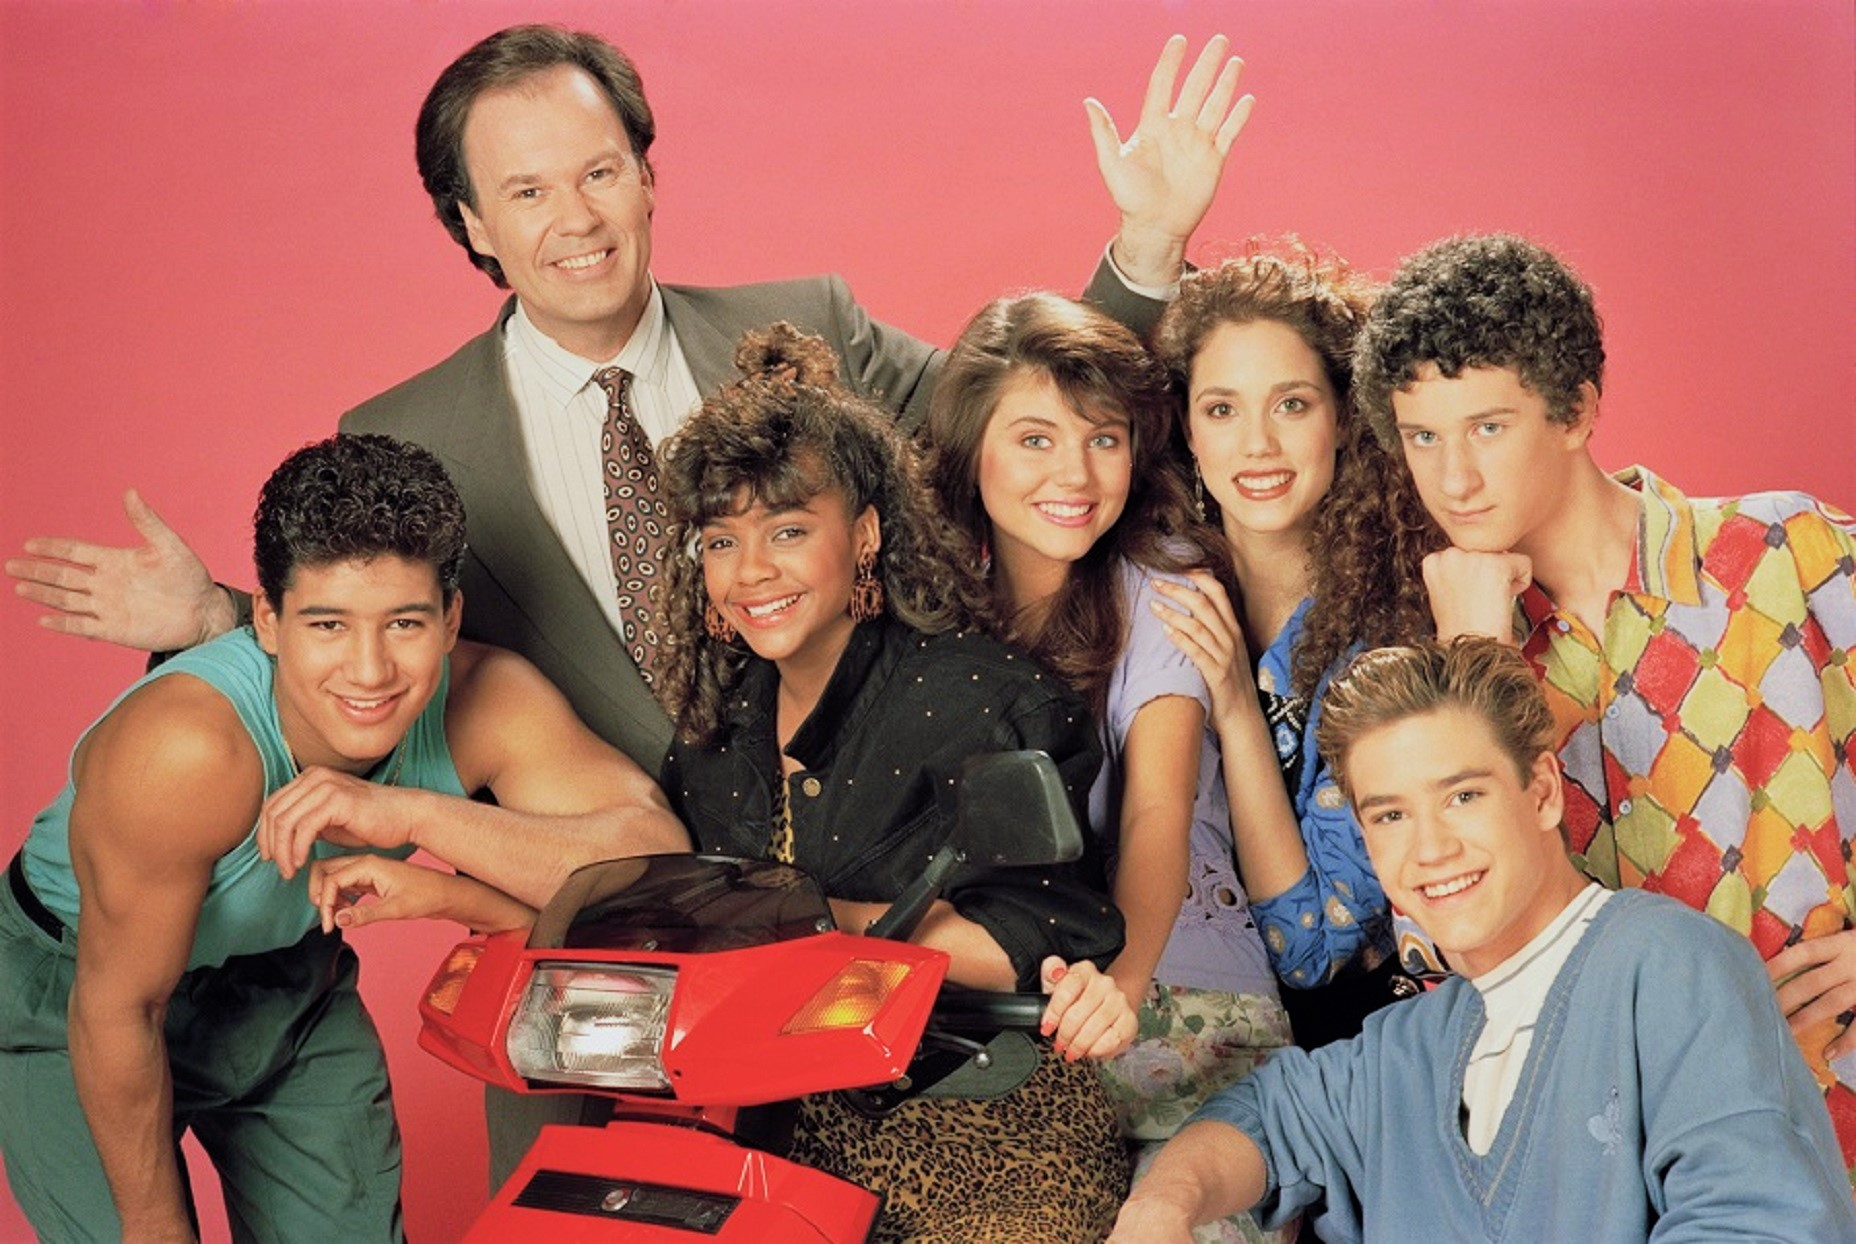 A Saved by the Bell Revival is Finally Happening, and Yes, Original Cast Members Are Involved